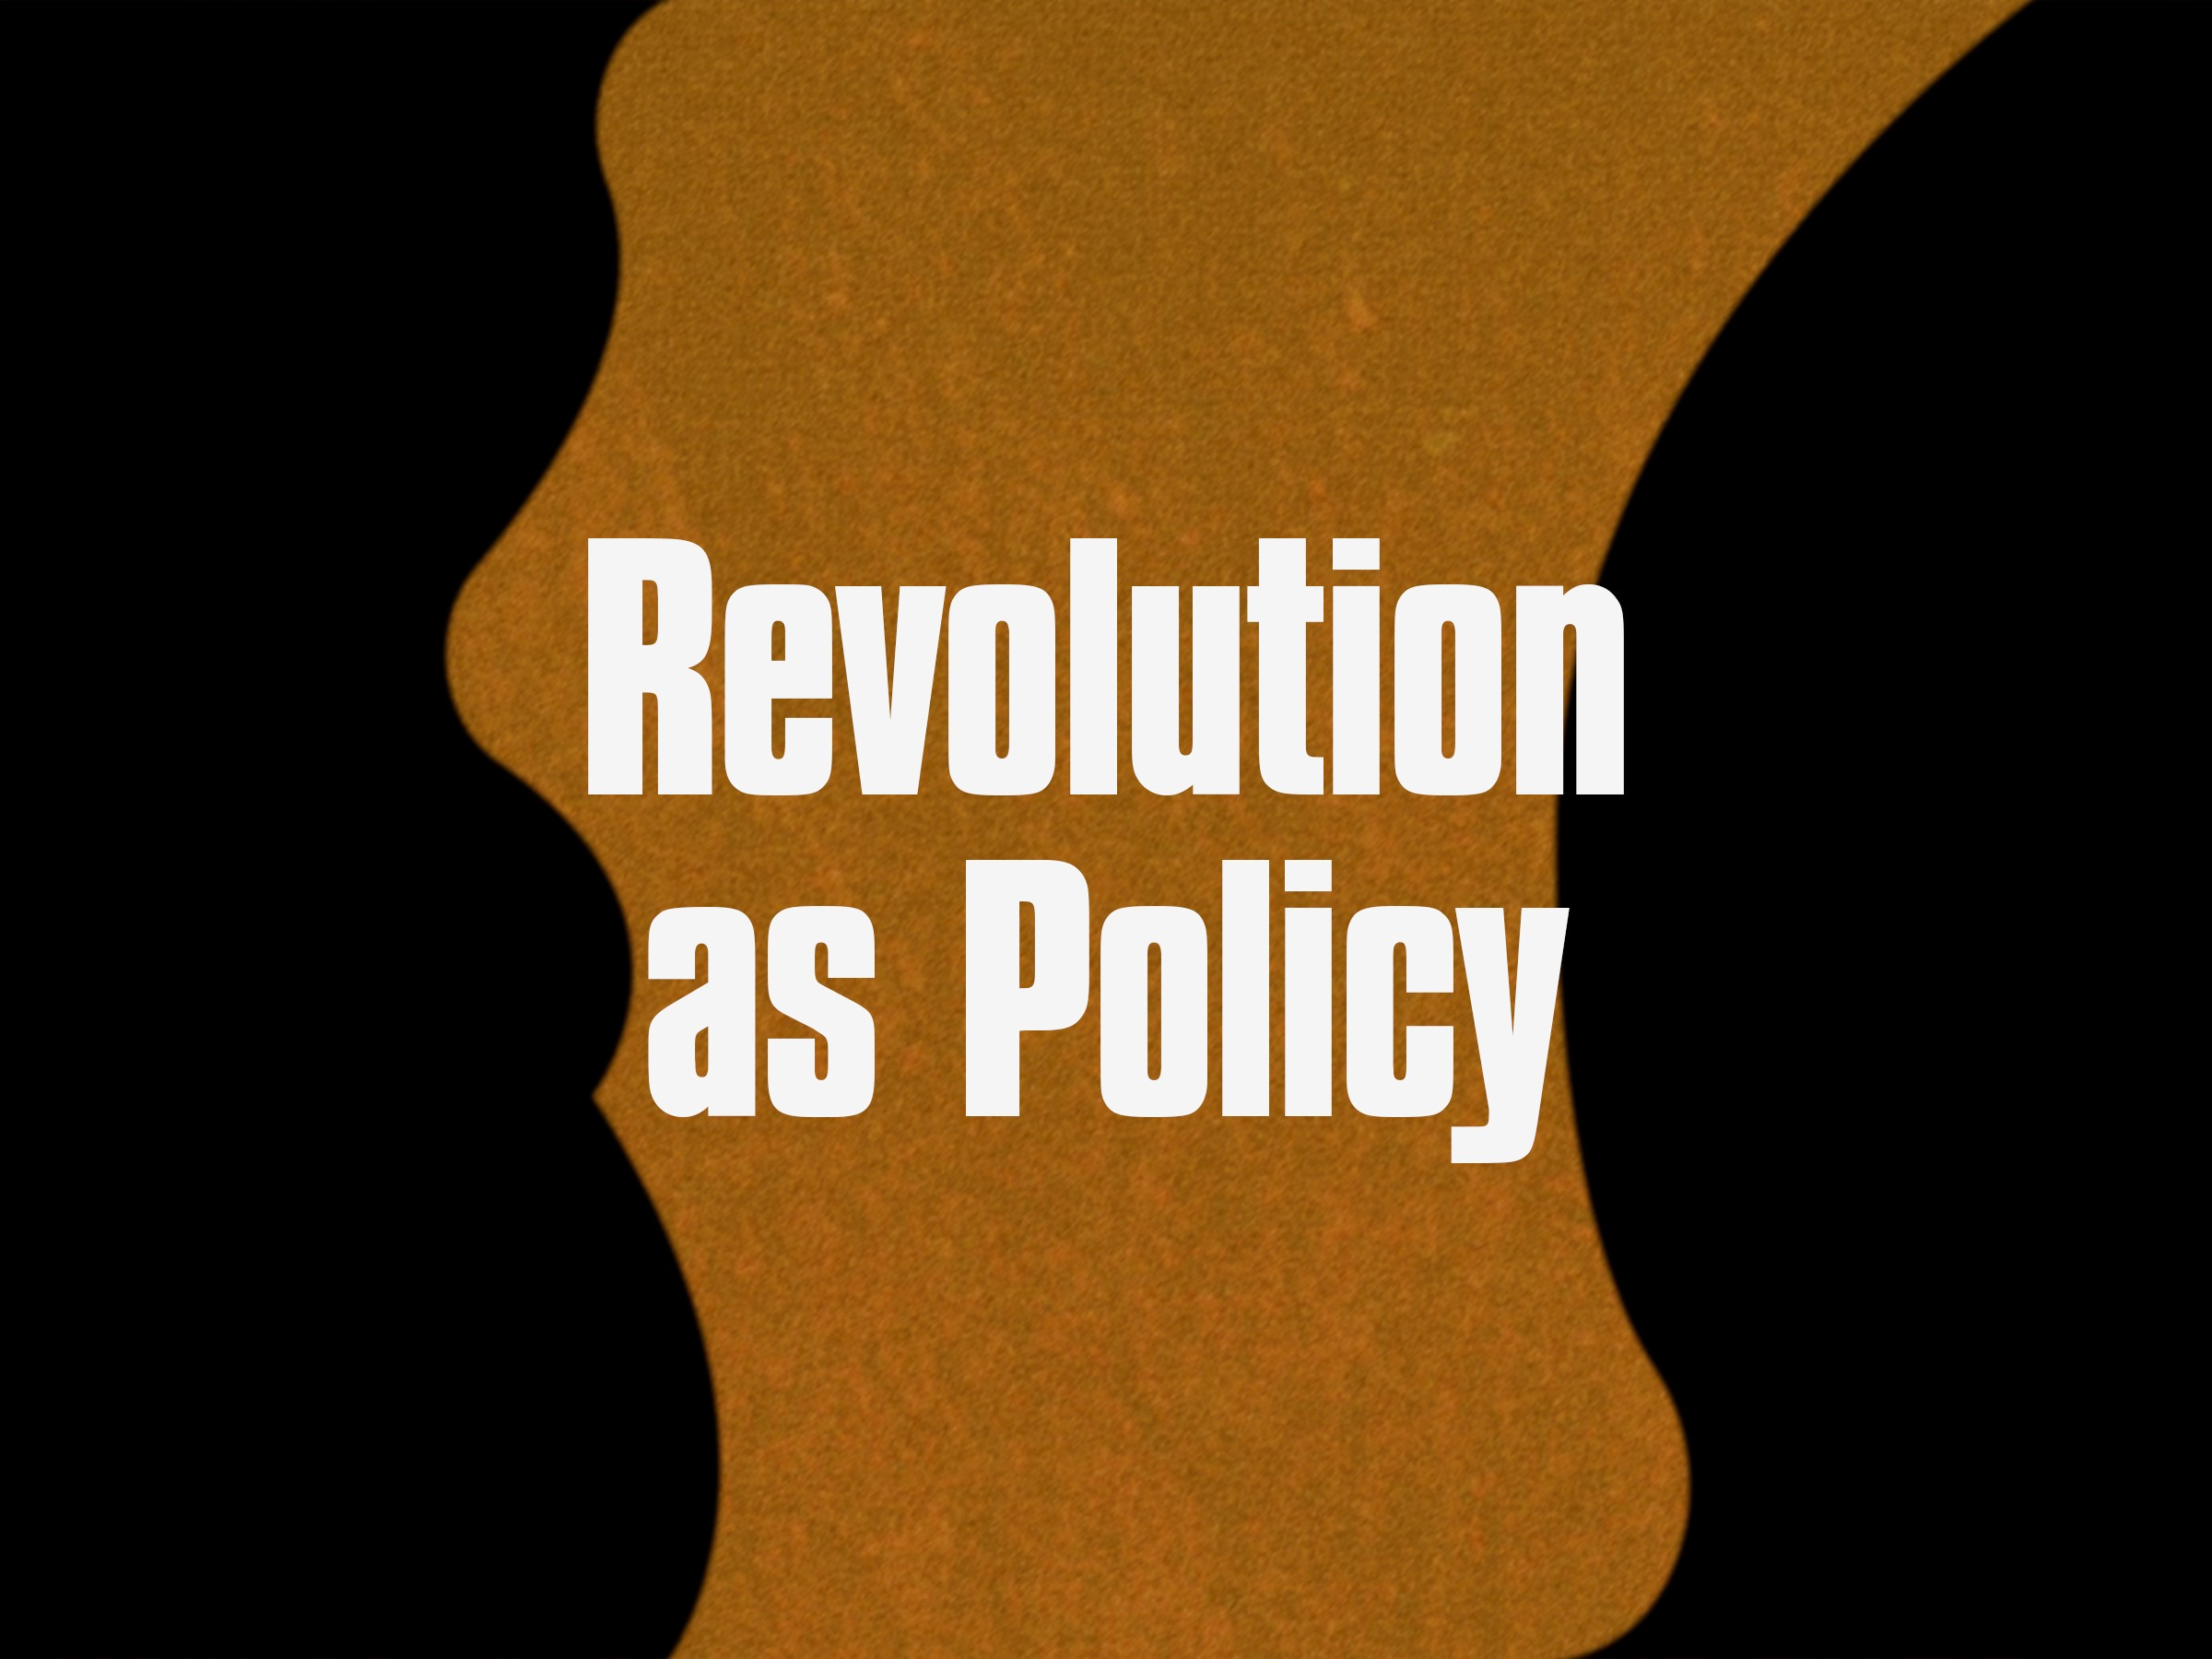 Revolution as Policy